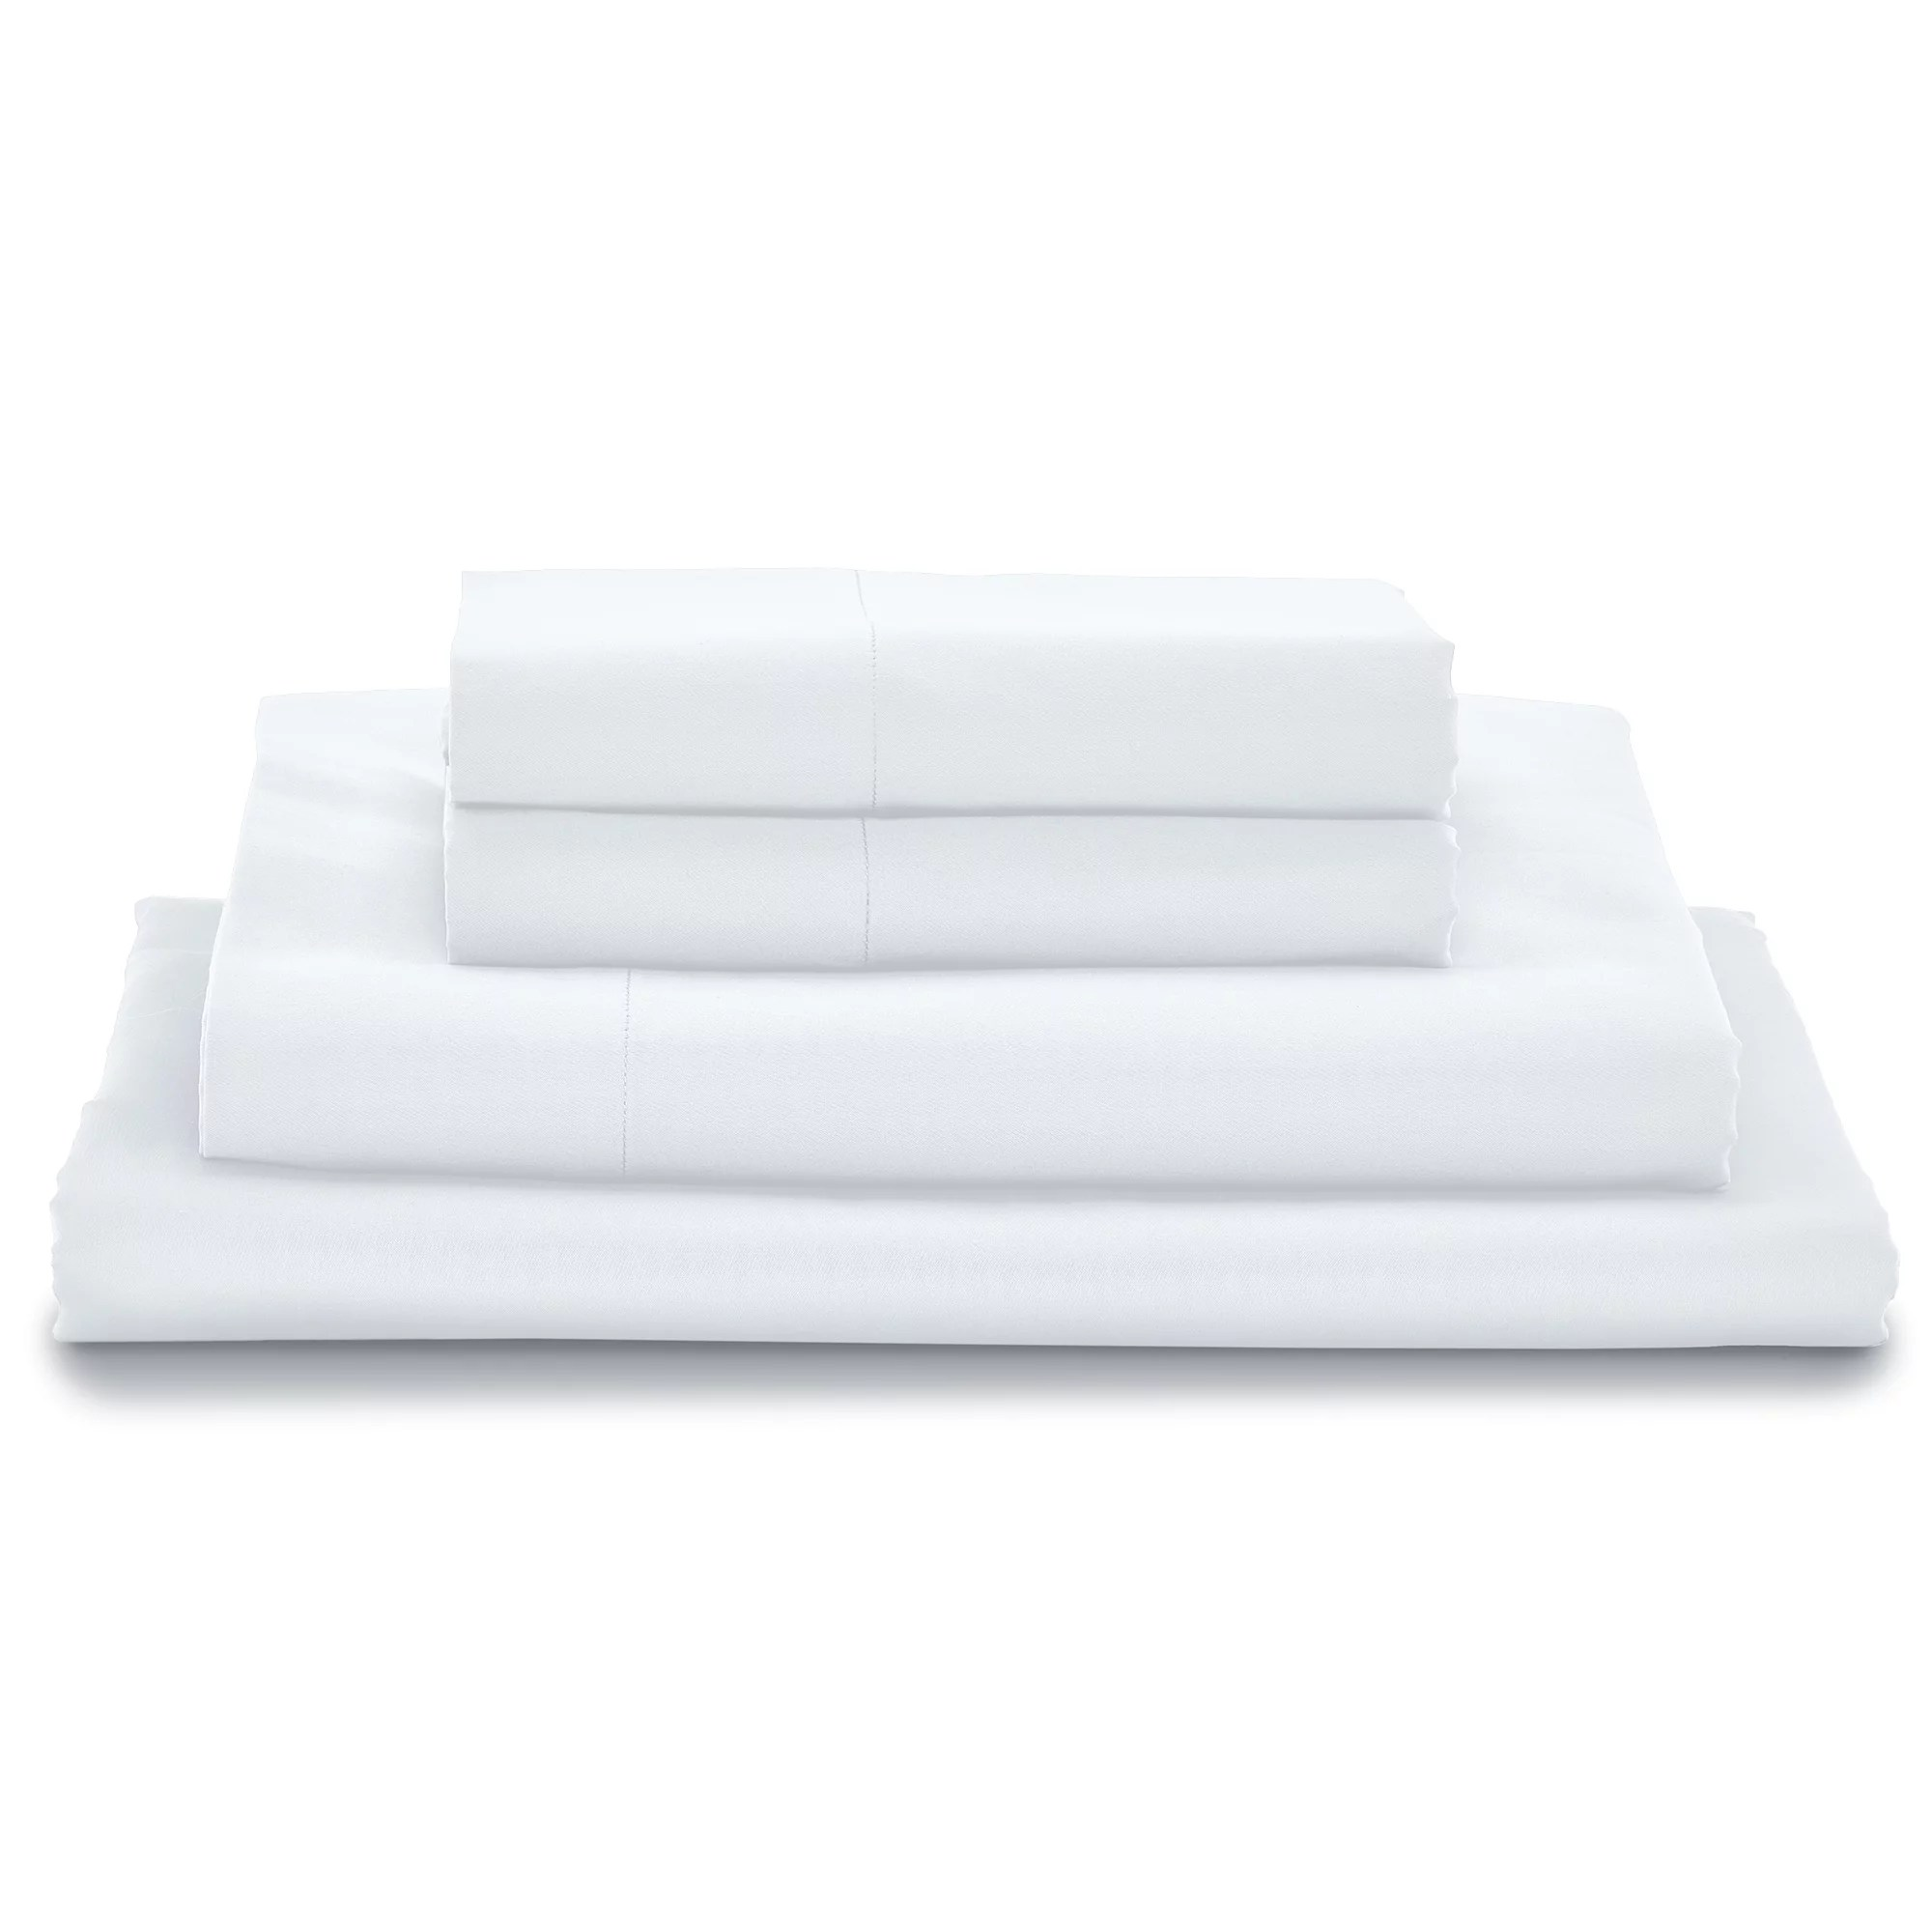 my pillow bed sheets queen white long staple cotton giza dreams bed sheet set